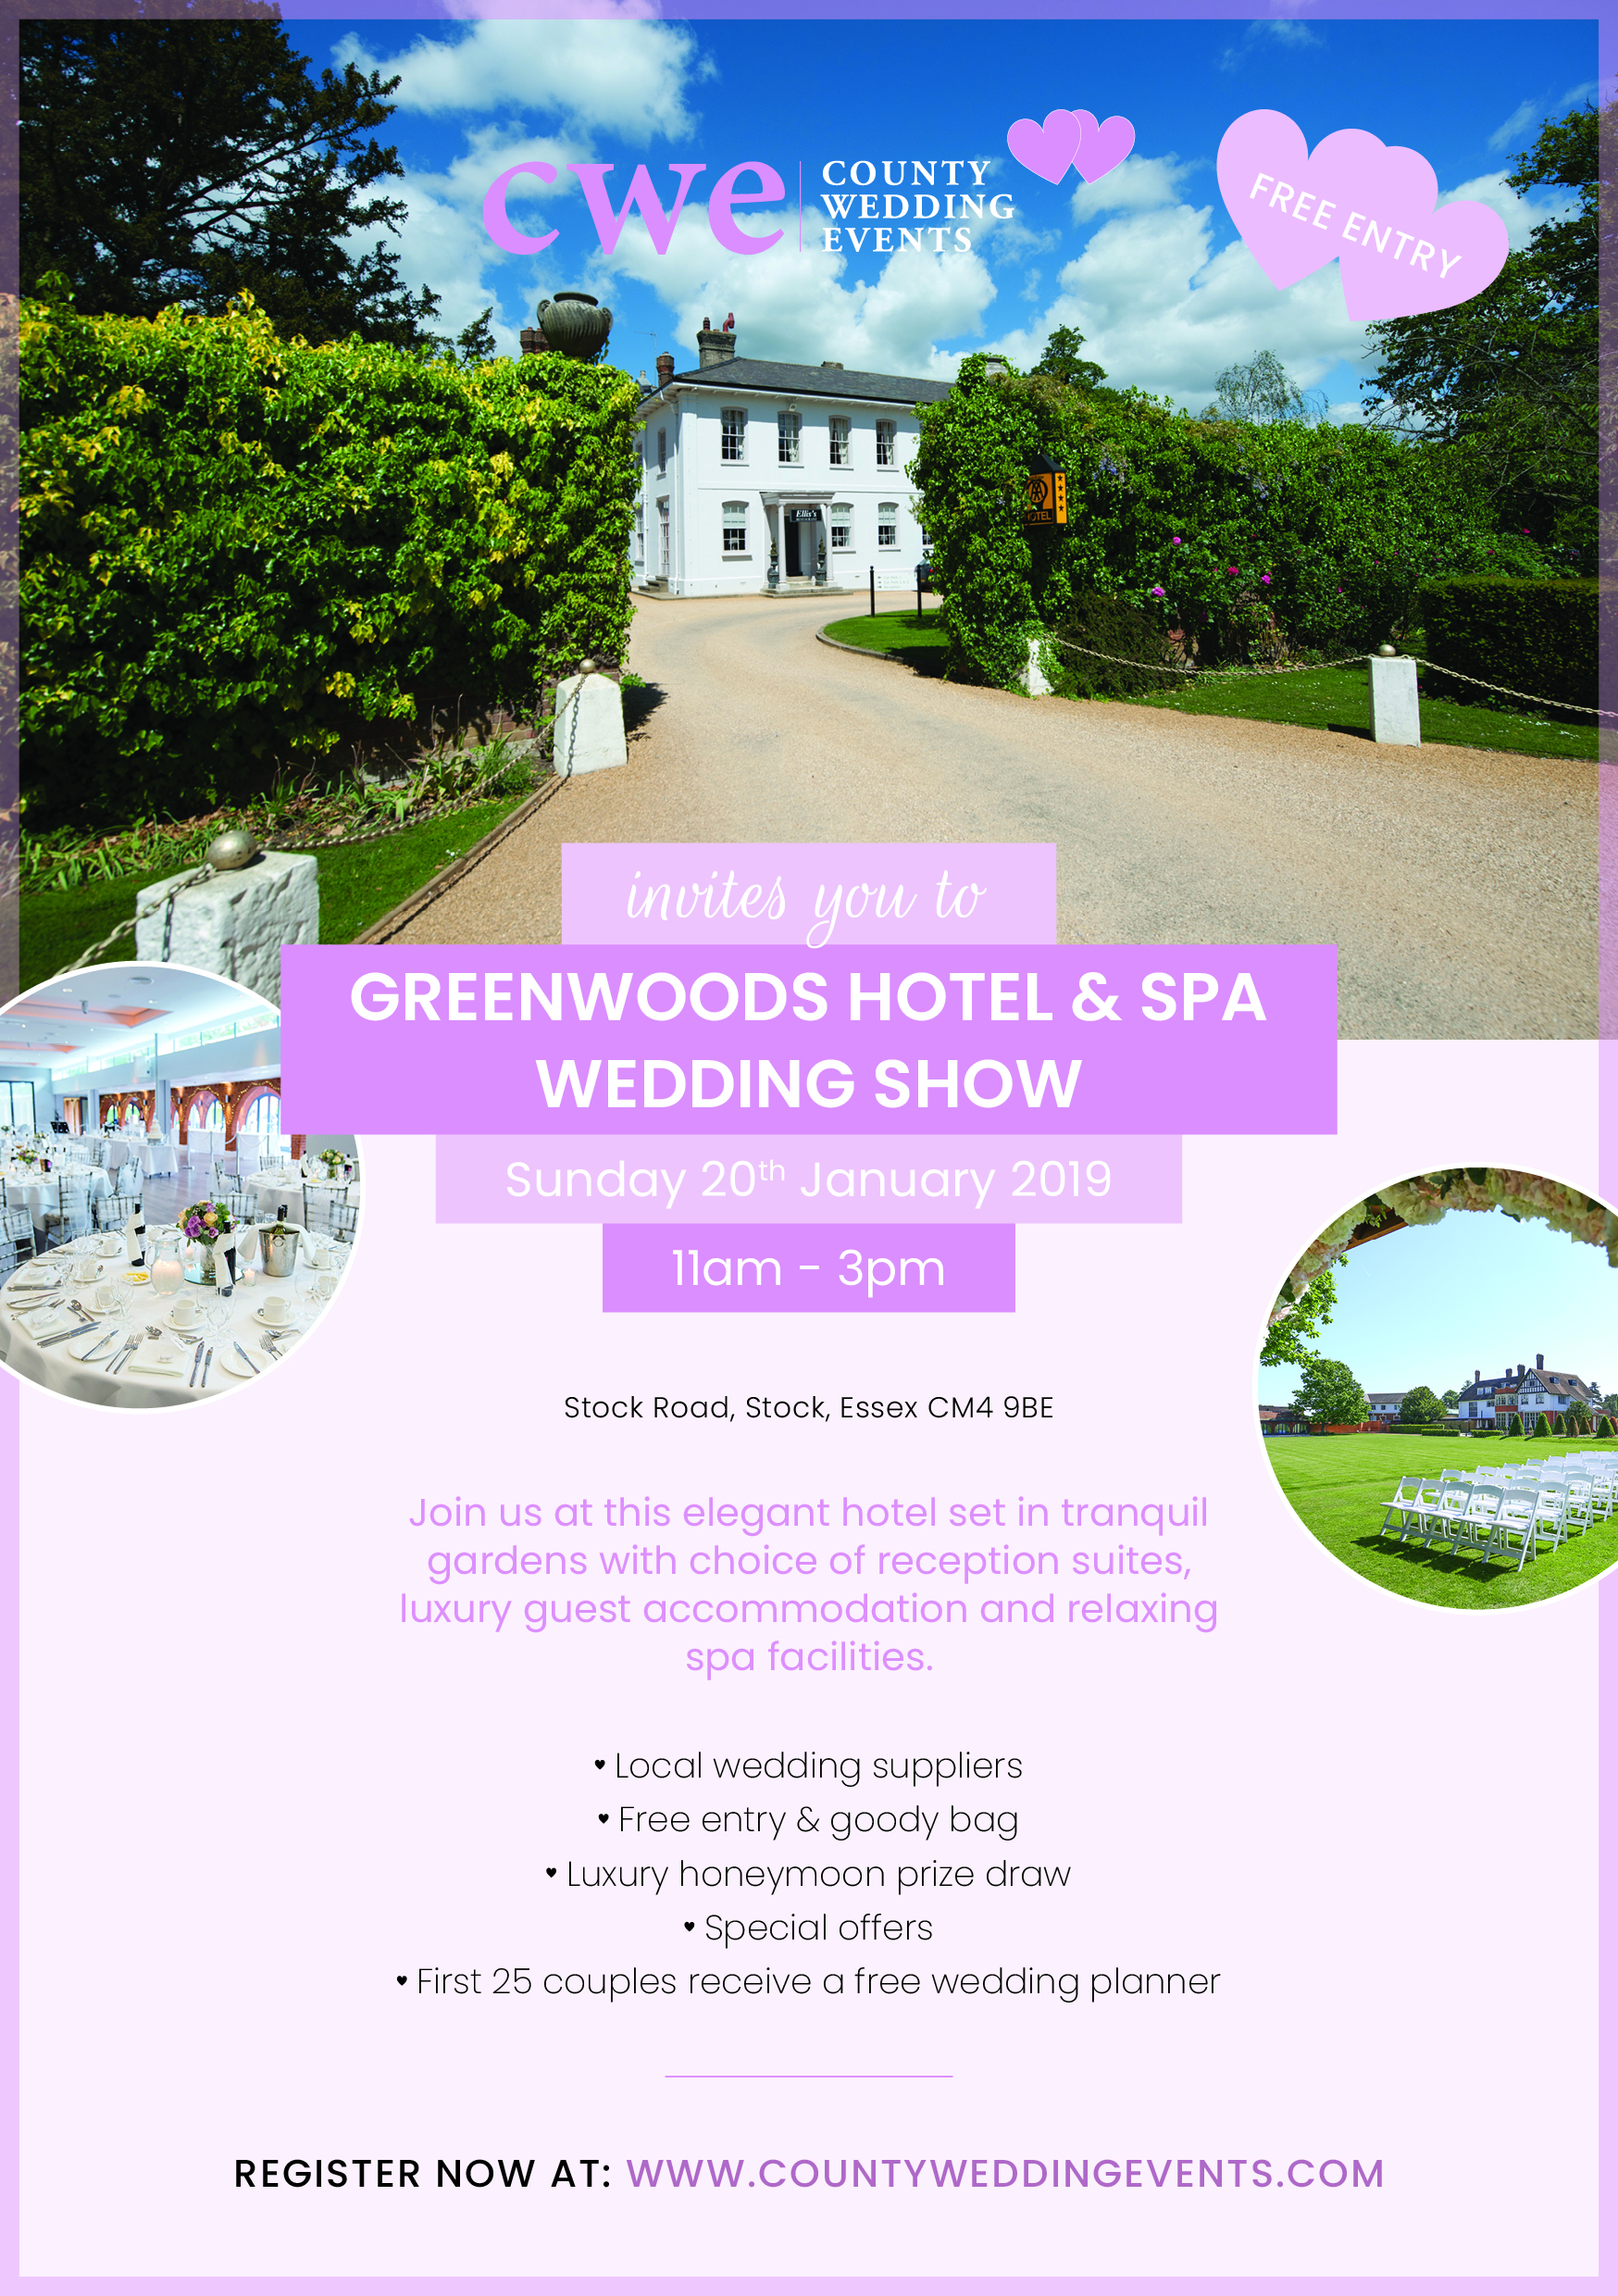 Greenwoods Hotel & Spa Wedding Show 20th January 2019